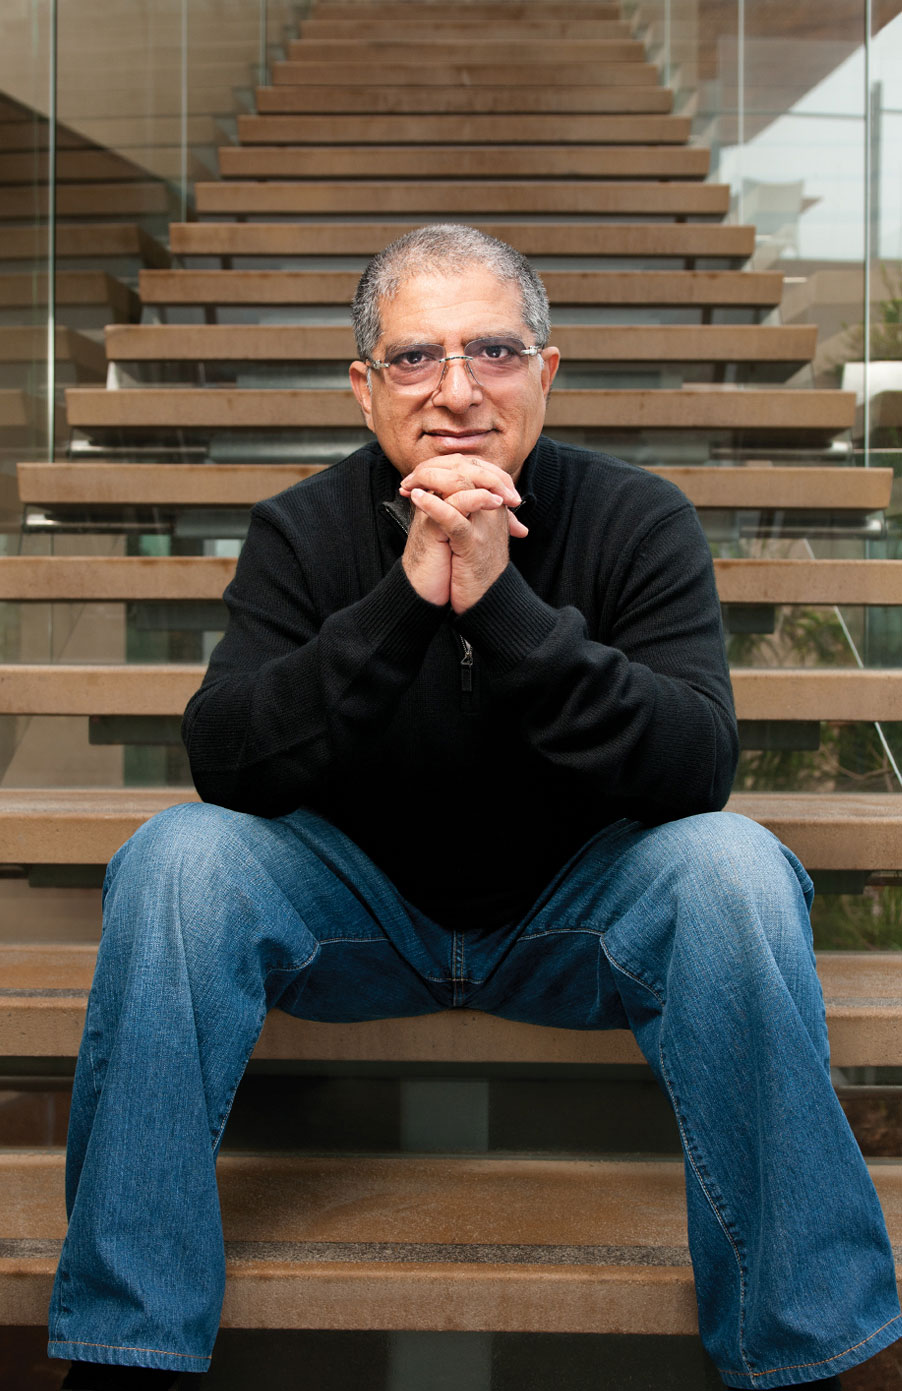 Deepak Chopra photographed for the cover of USCD Extension magazine